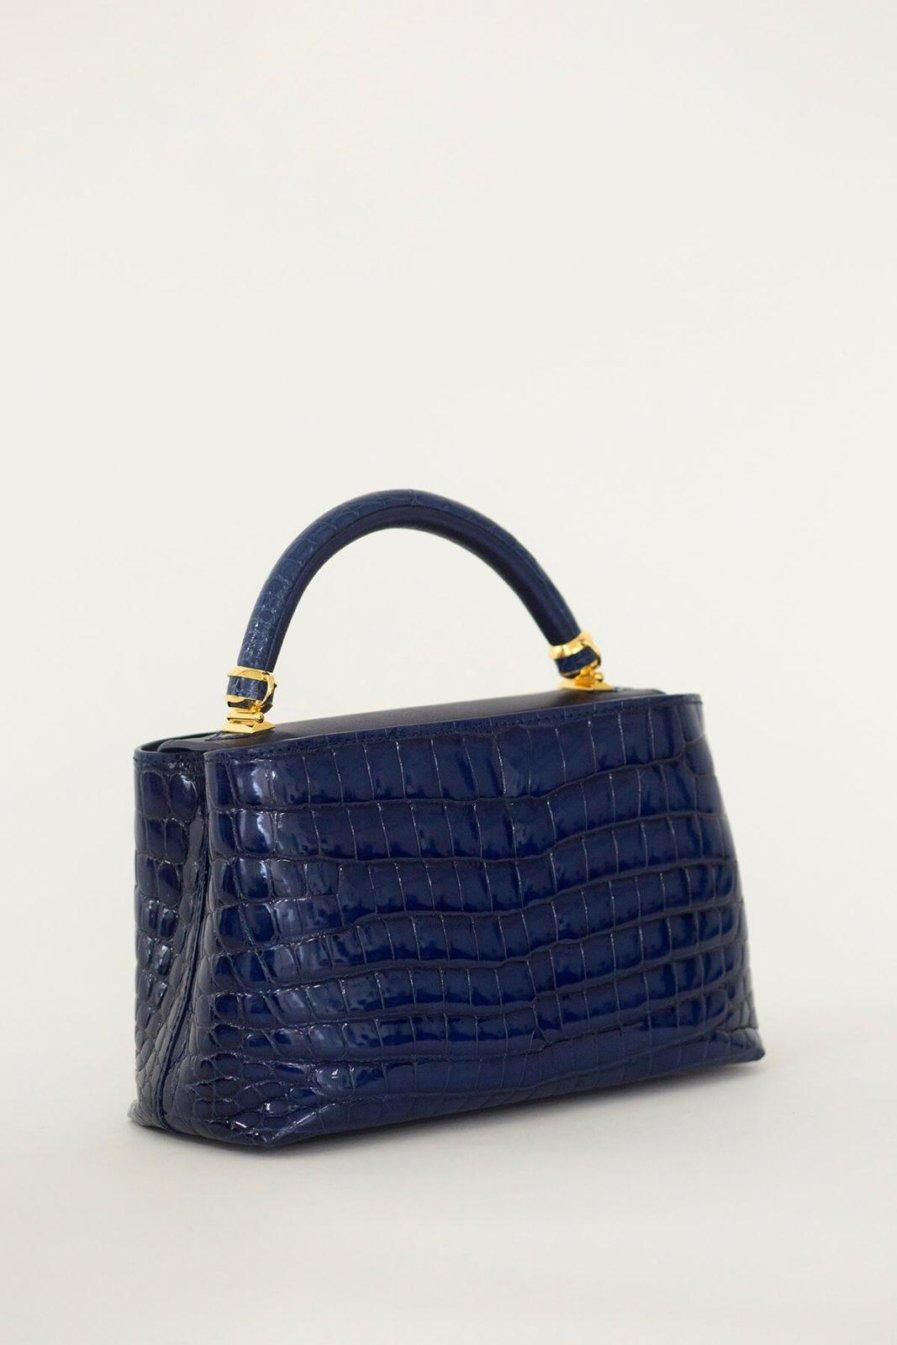 [:en]Rectangular Crocodile Bag[:ja]クロコダイルバッグ[:]